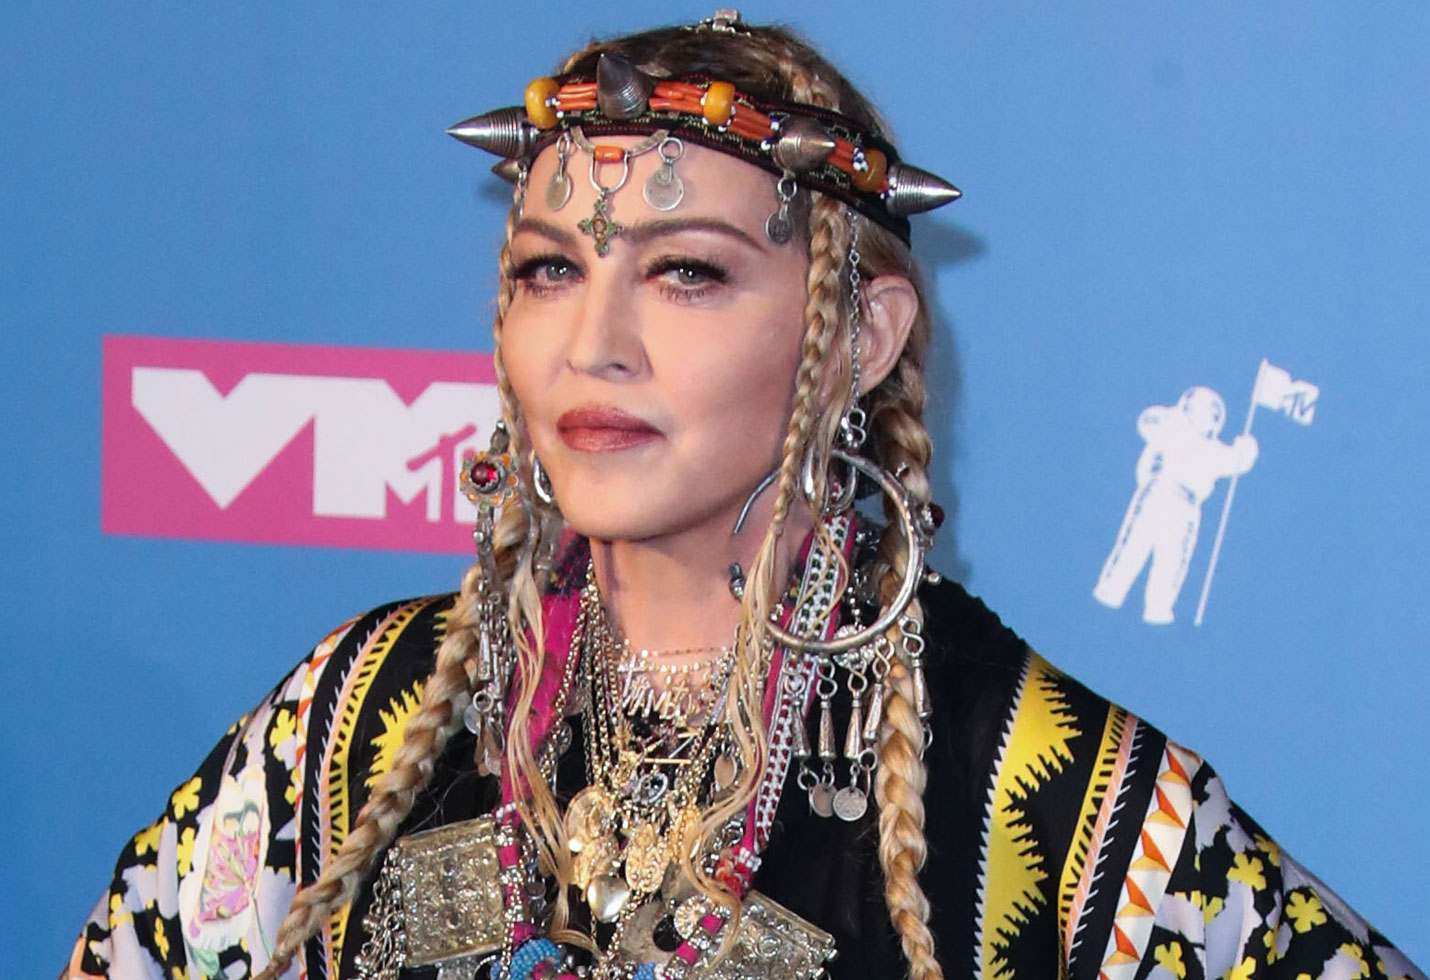 Madonna accused watching whale porn